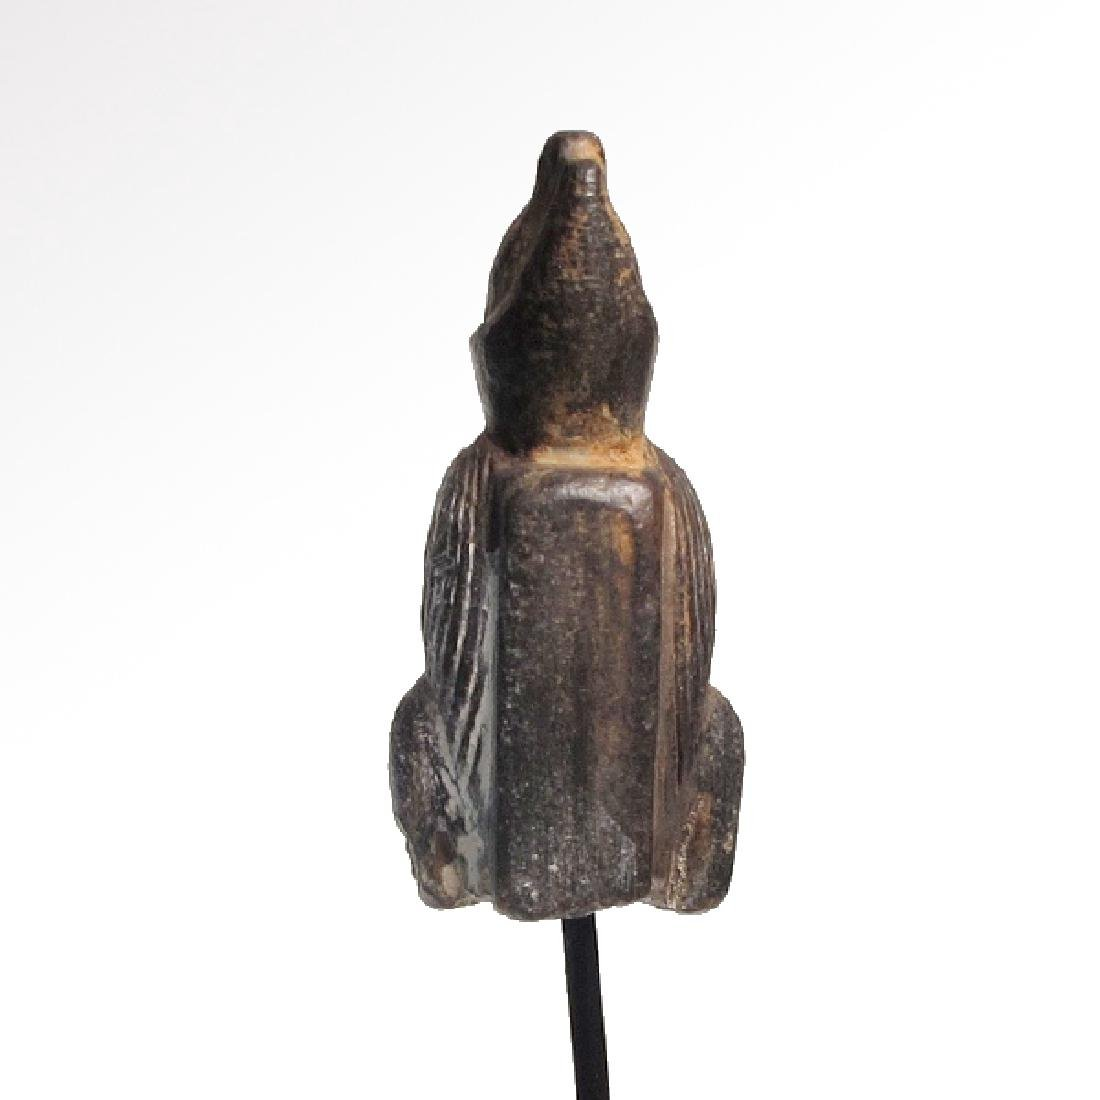 Egyptian Steatite Figure of Horus the Falcon - 5